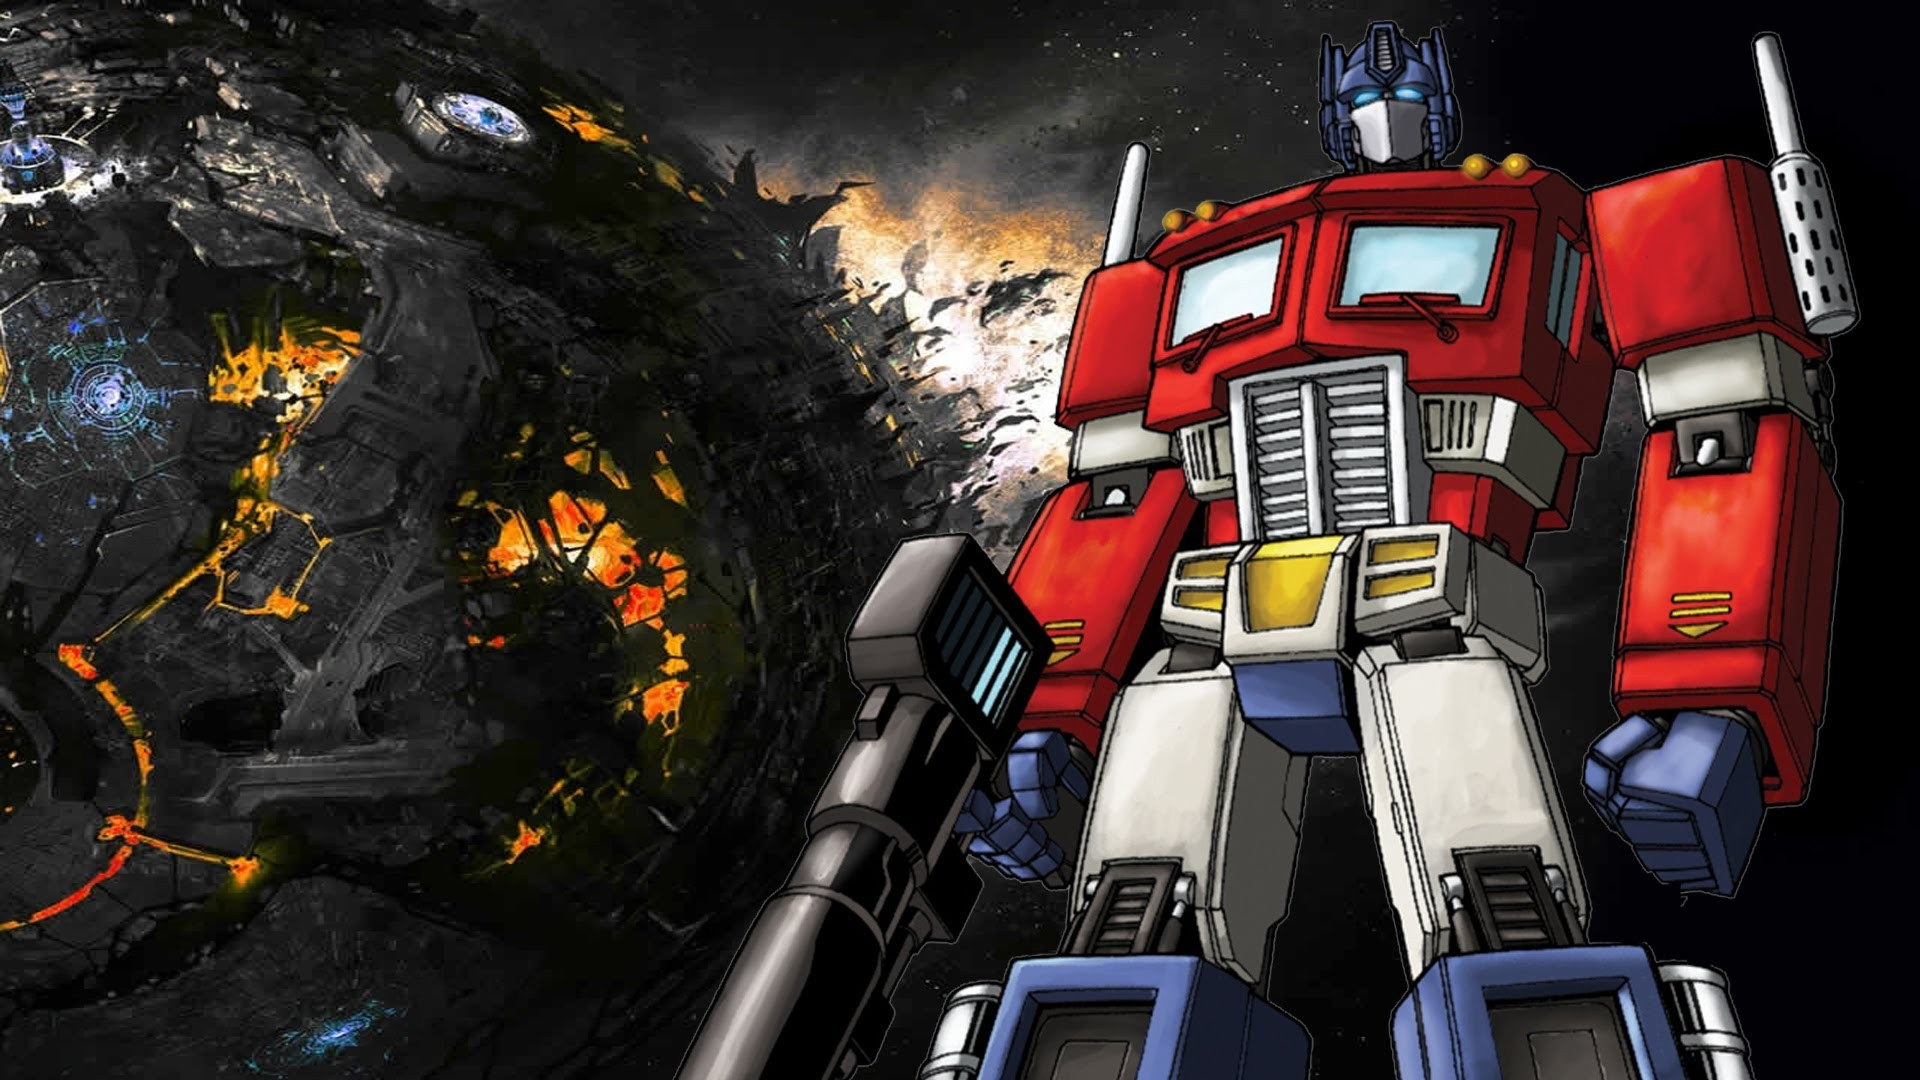 G1 Transformers Wallpaper HD 66 images